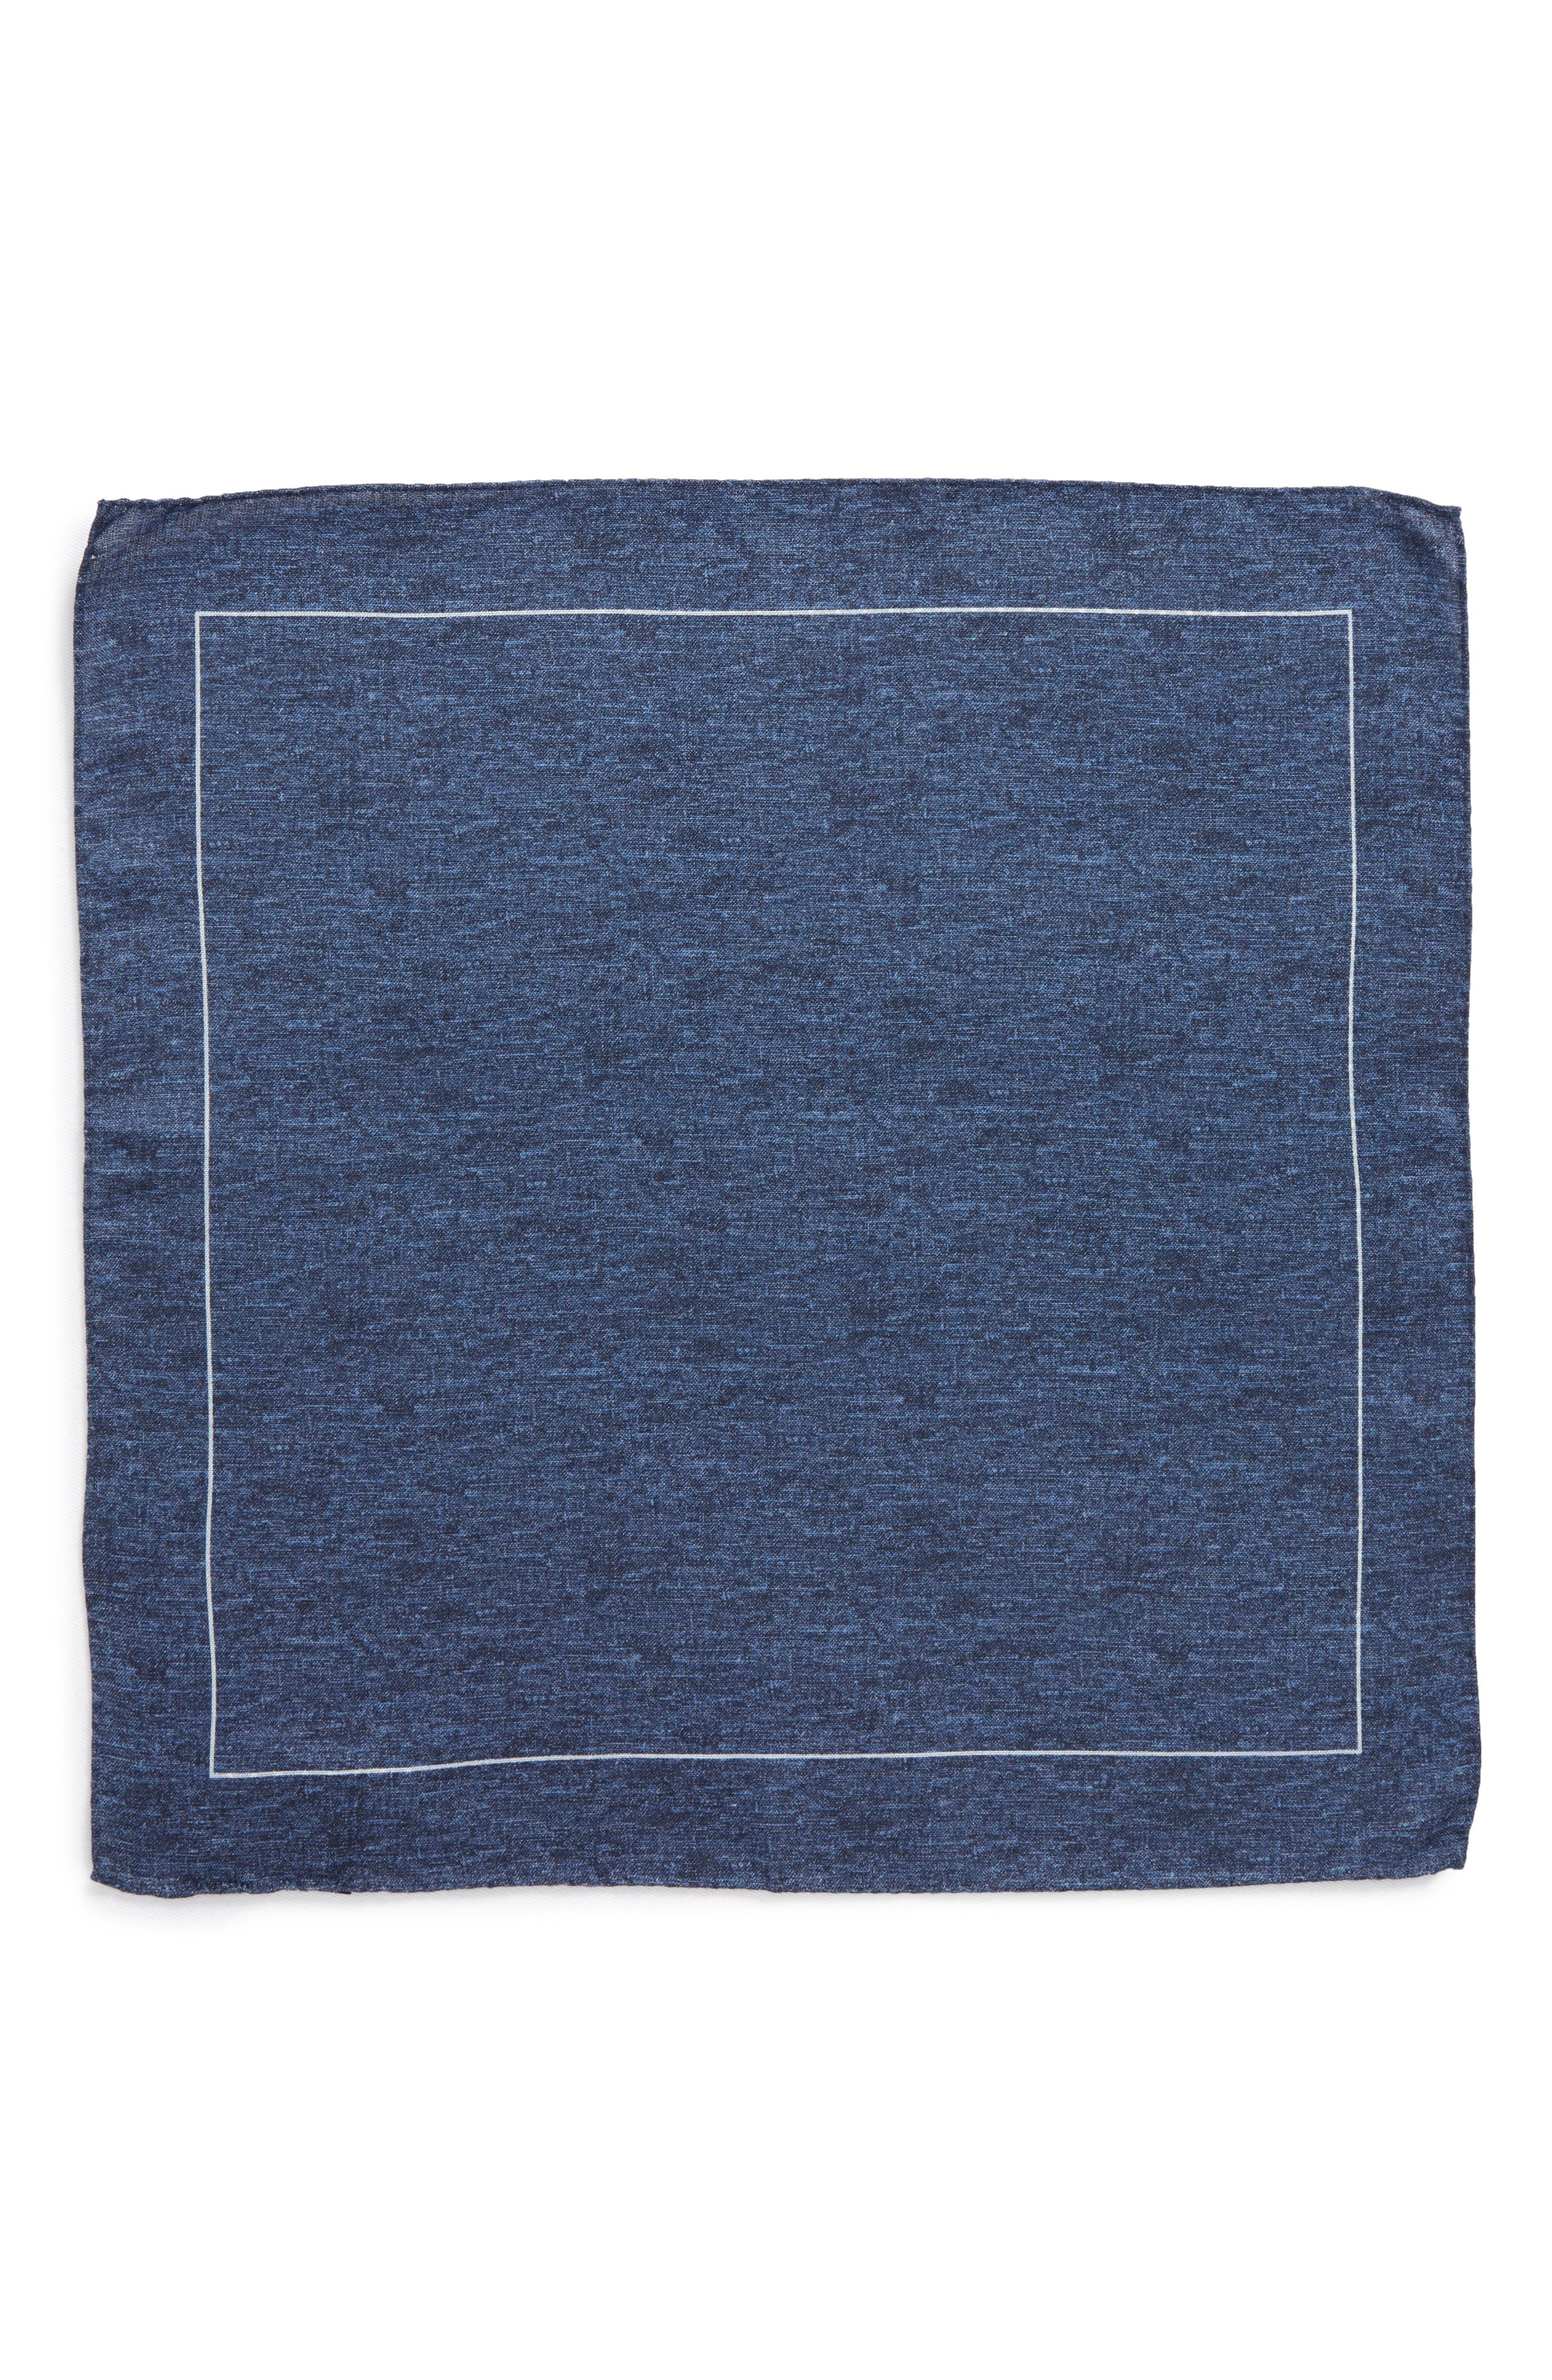 Denim Print Silk Pocket Square,                             Alternate thumbnail 2, color,                             410